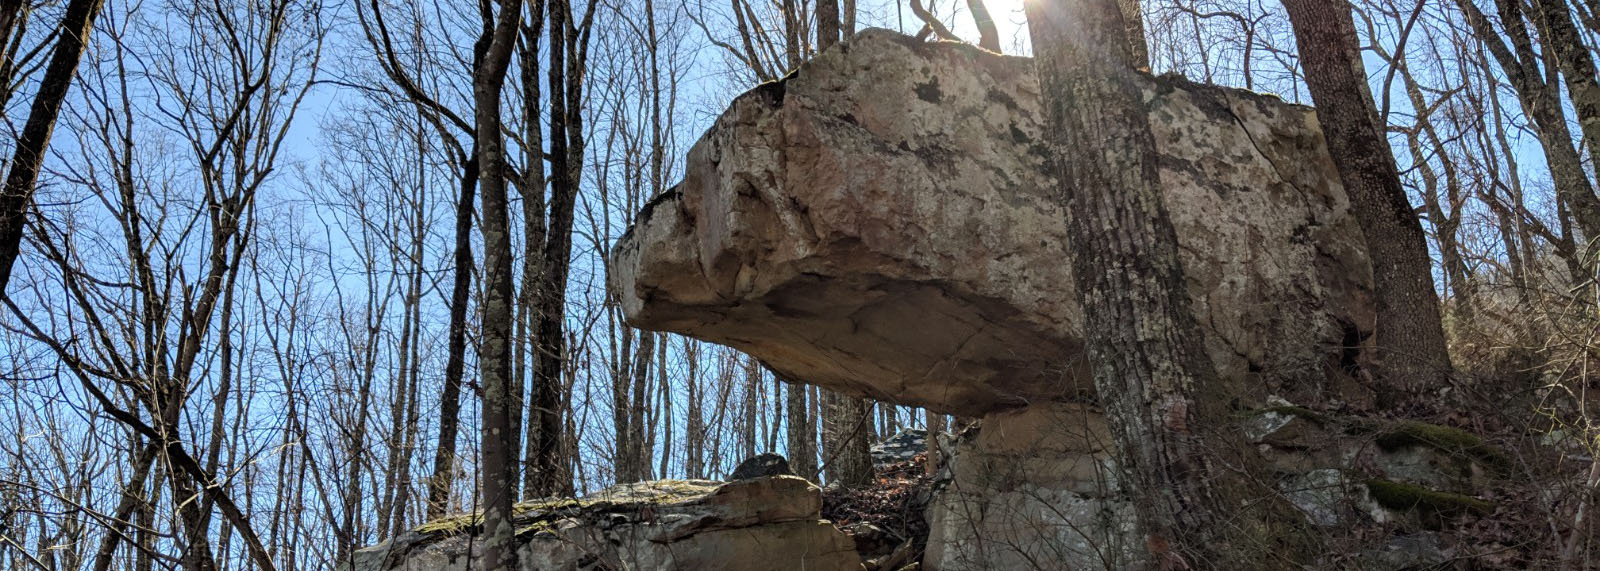 Woods, Tennesee, Large Rock, Trail Planning